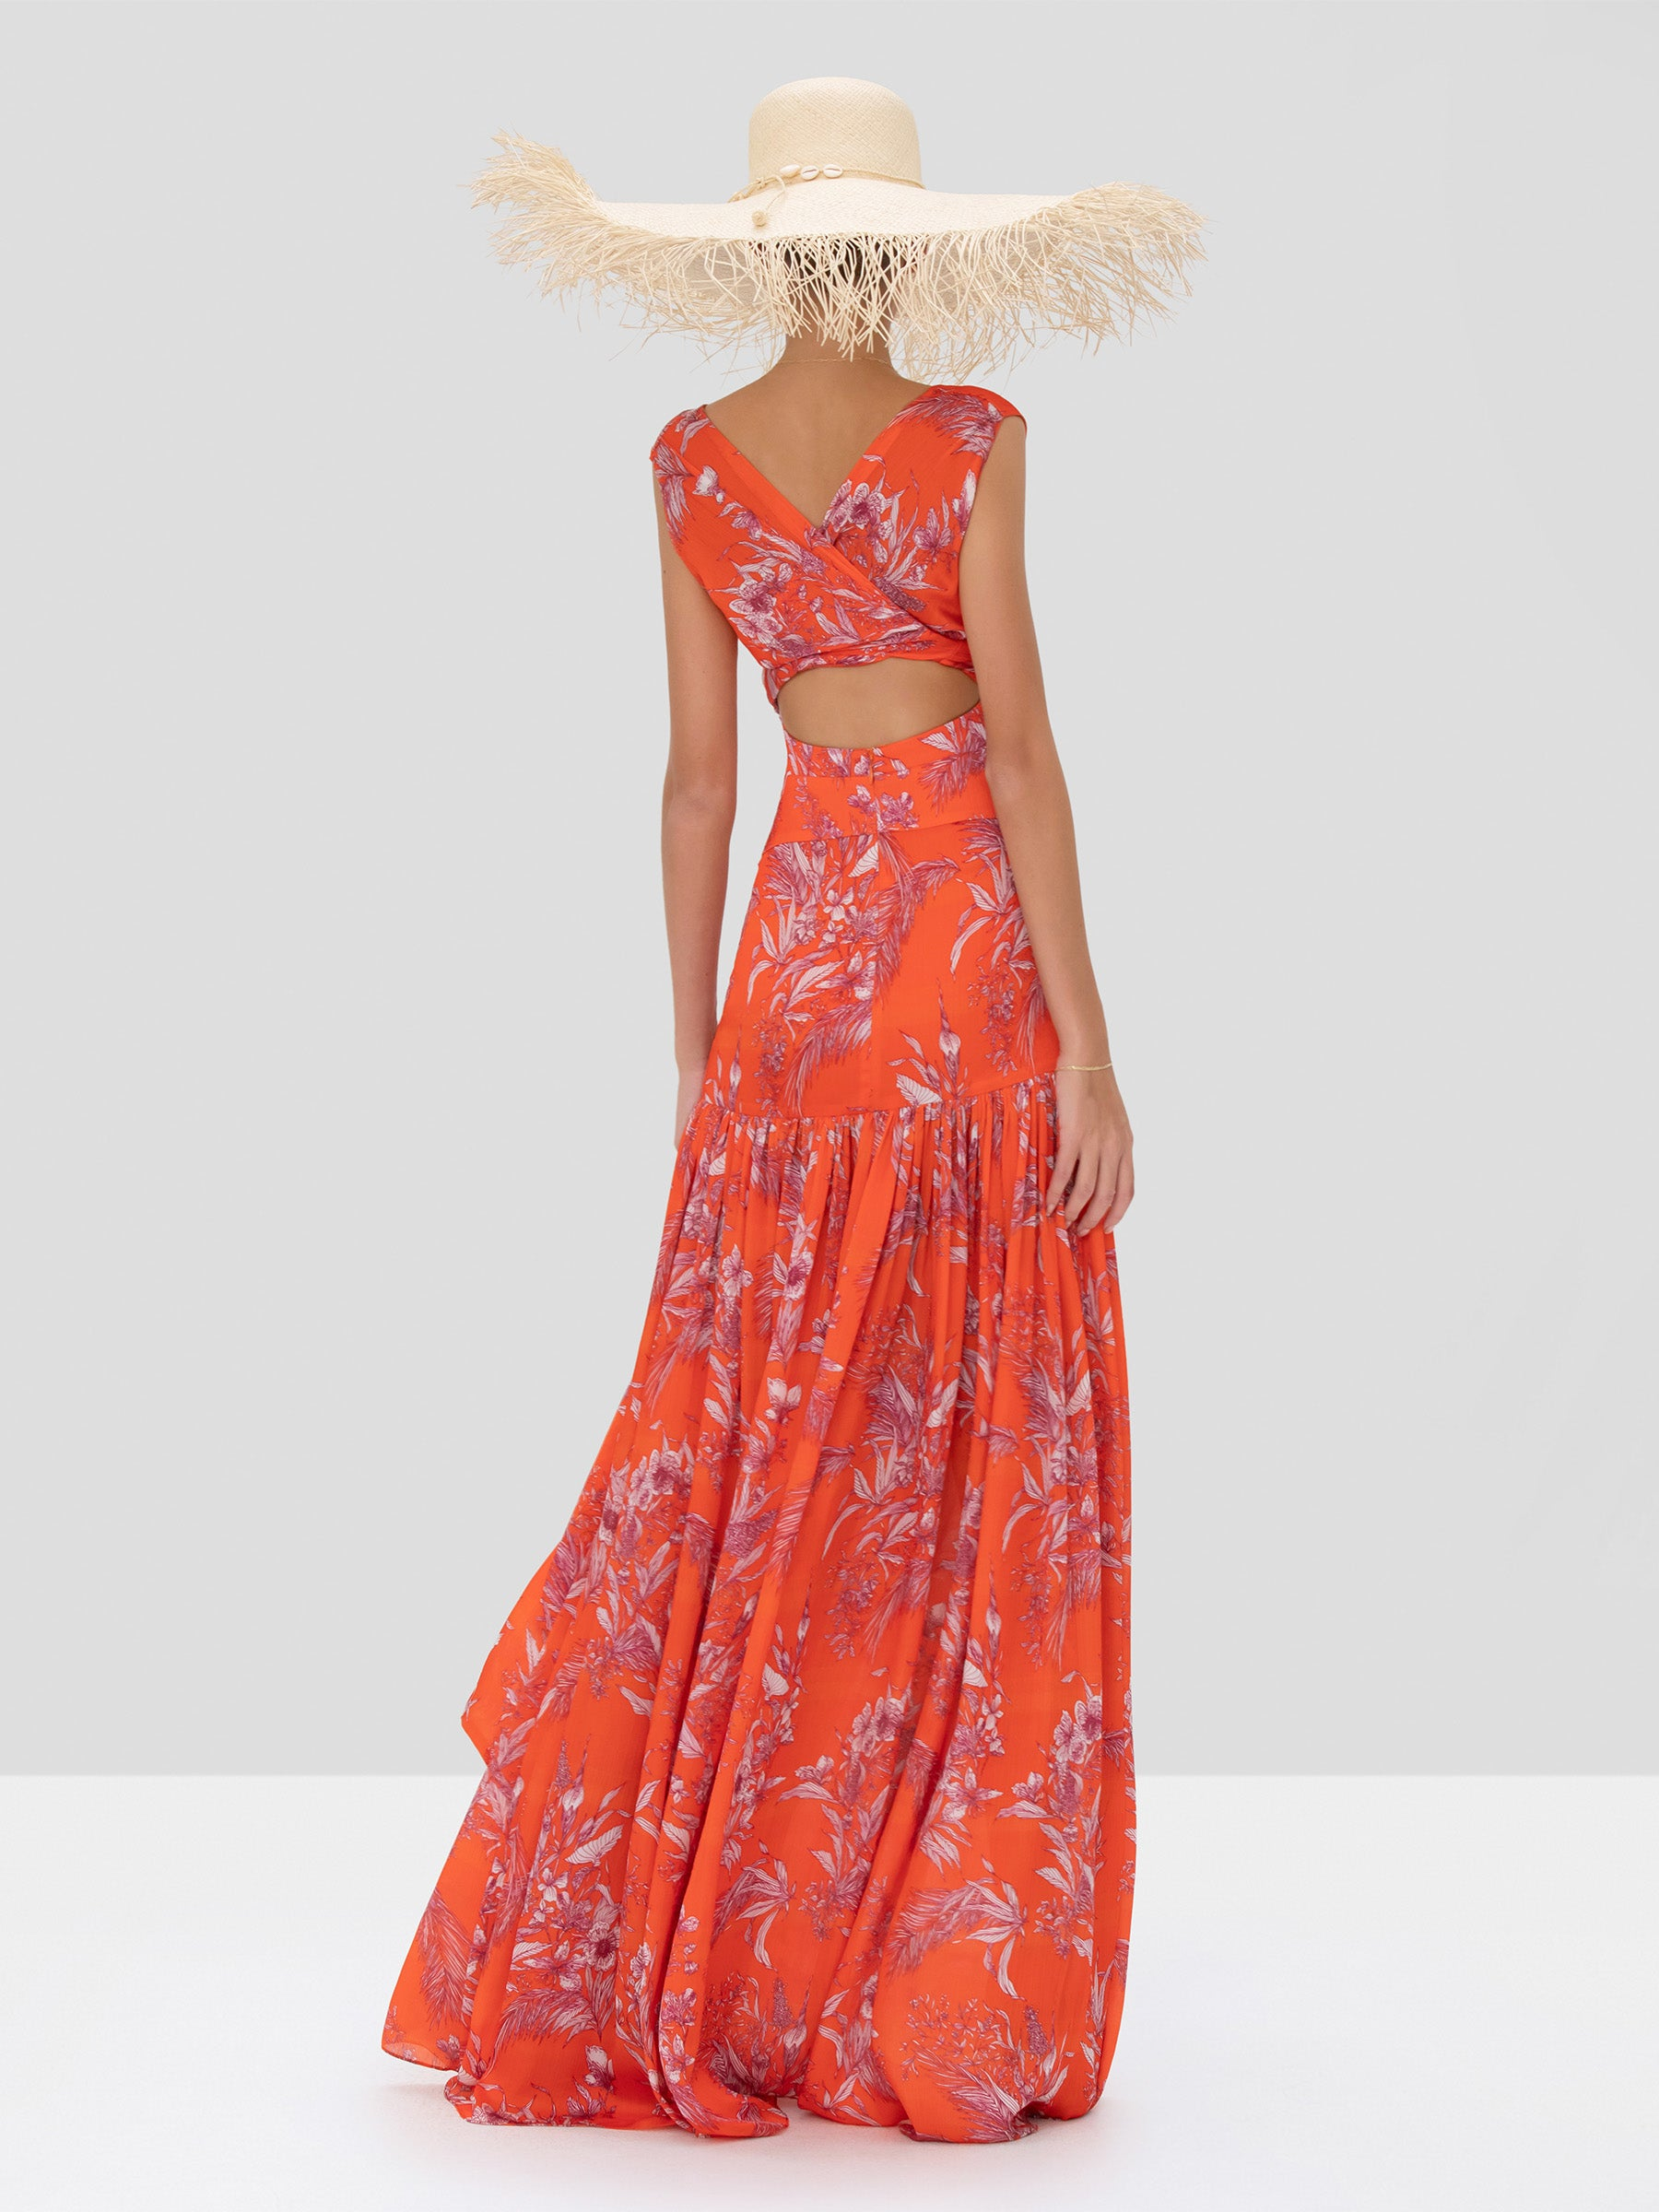 Alexis Belaya Dress in Mandarin Palm from Spring Summer 2020 Collection - Rear View